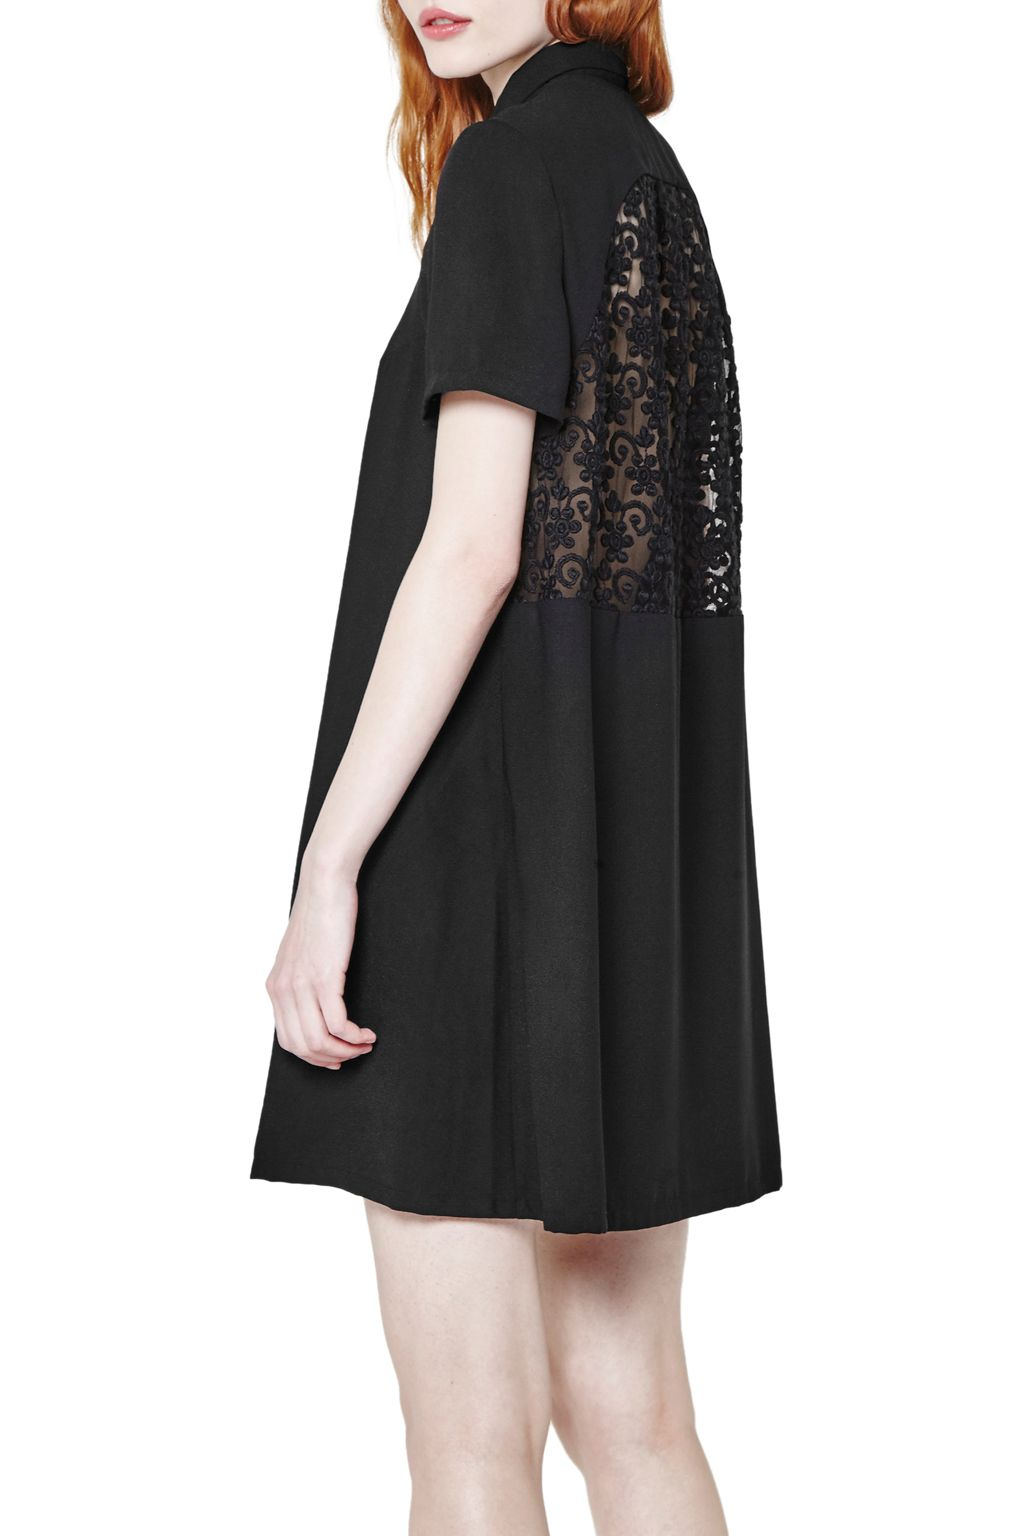 French connection maui lace shirt dress in black lyst for French connection shirt dress